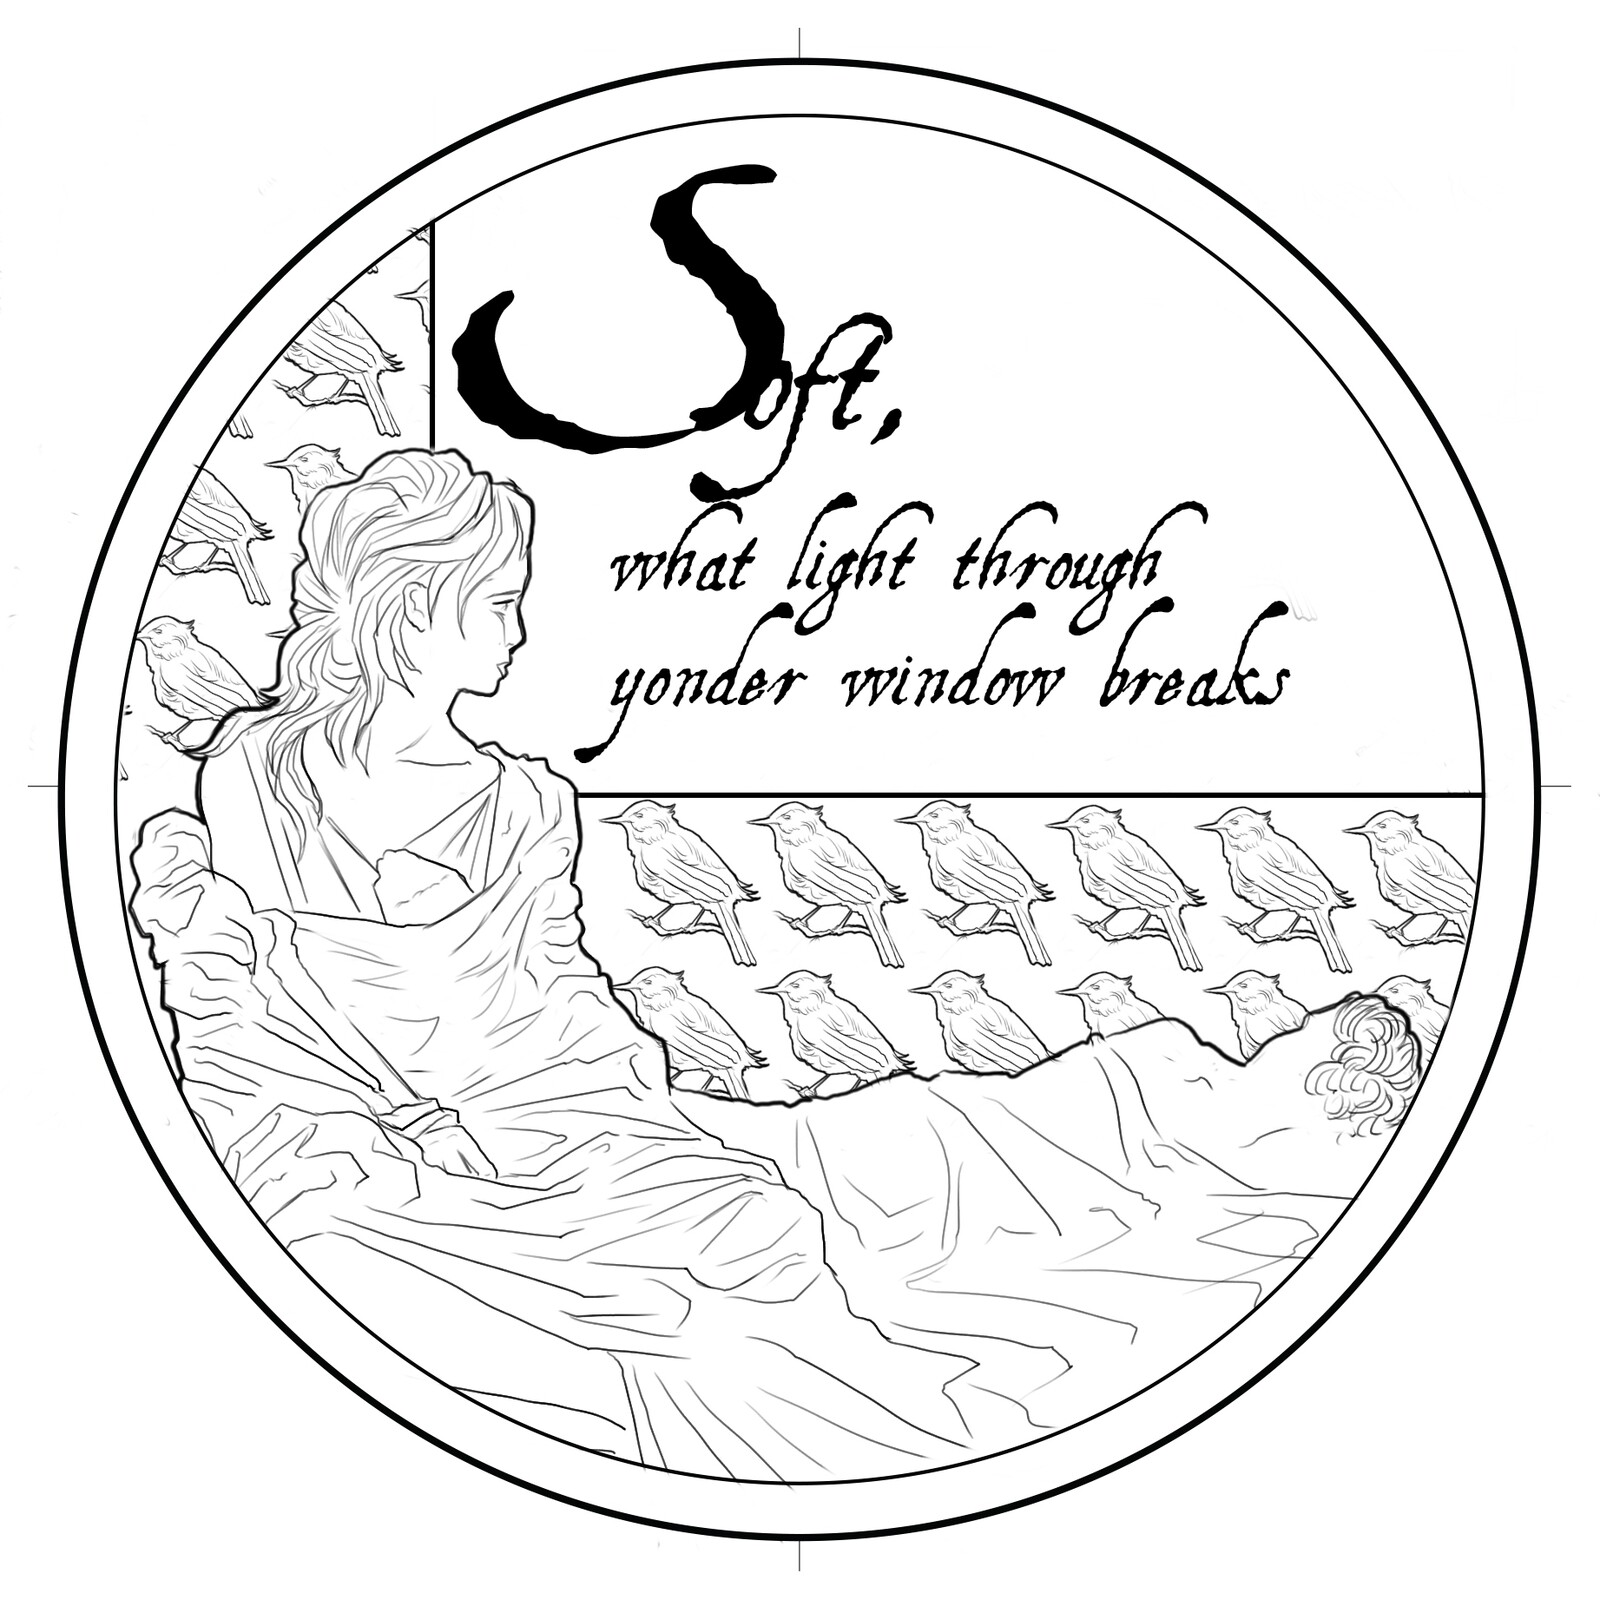 Design for Shakespeare medal series - Romeo and Juliet